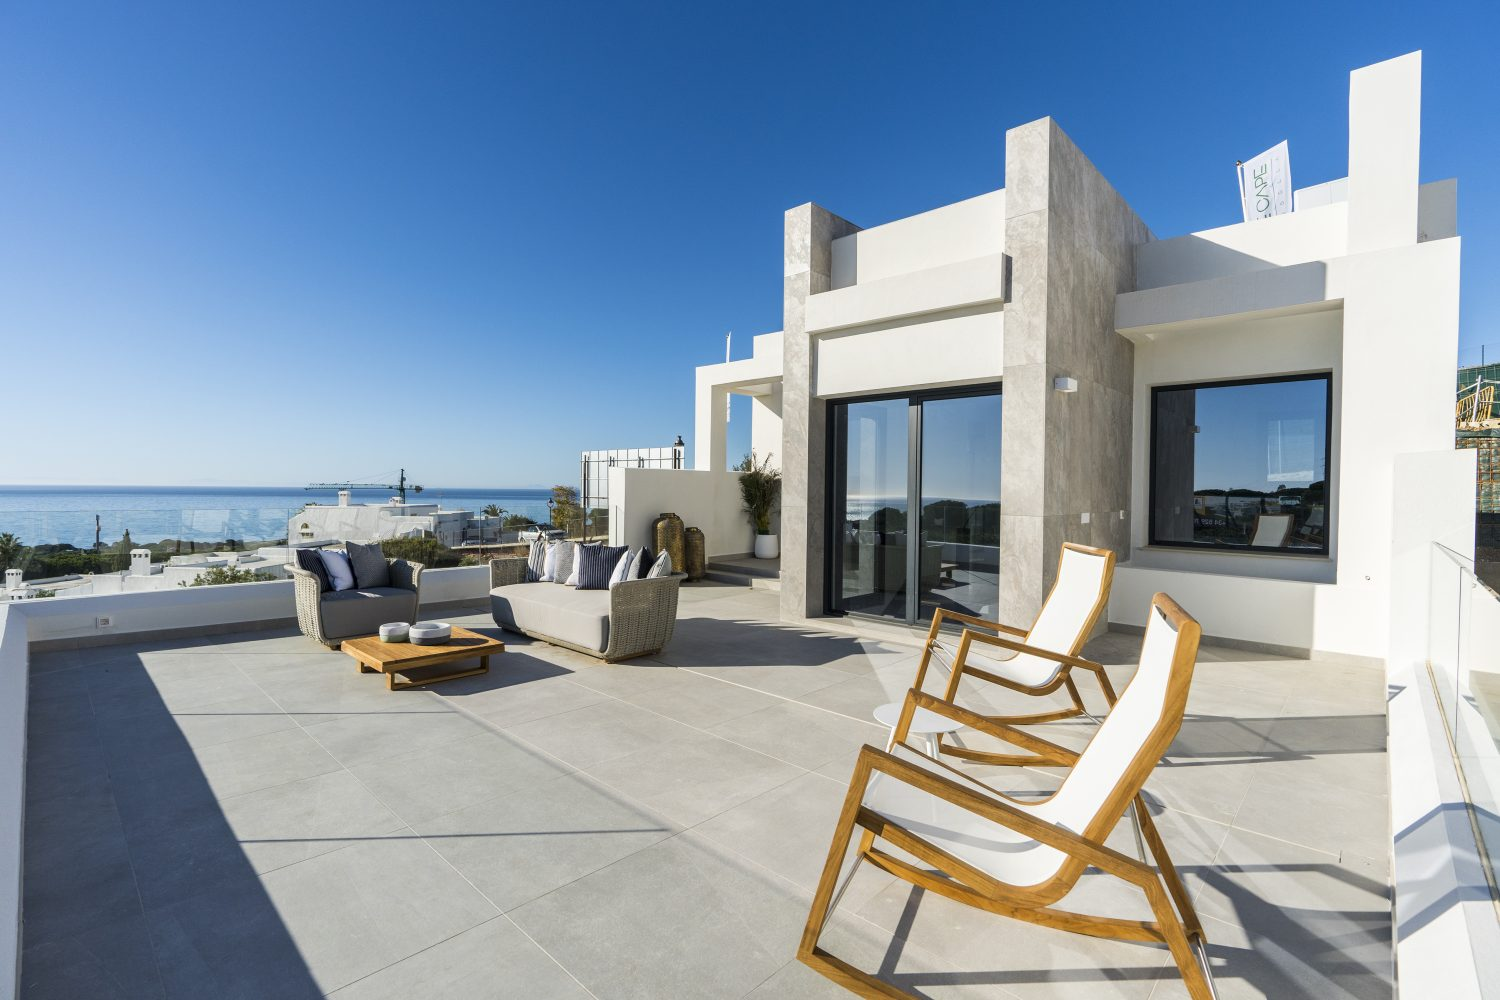 Exclusive residential complex made up of 23 townhouses and 2 independent villas in Cabopino, Marbella